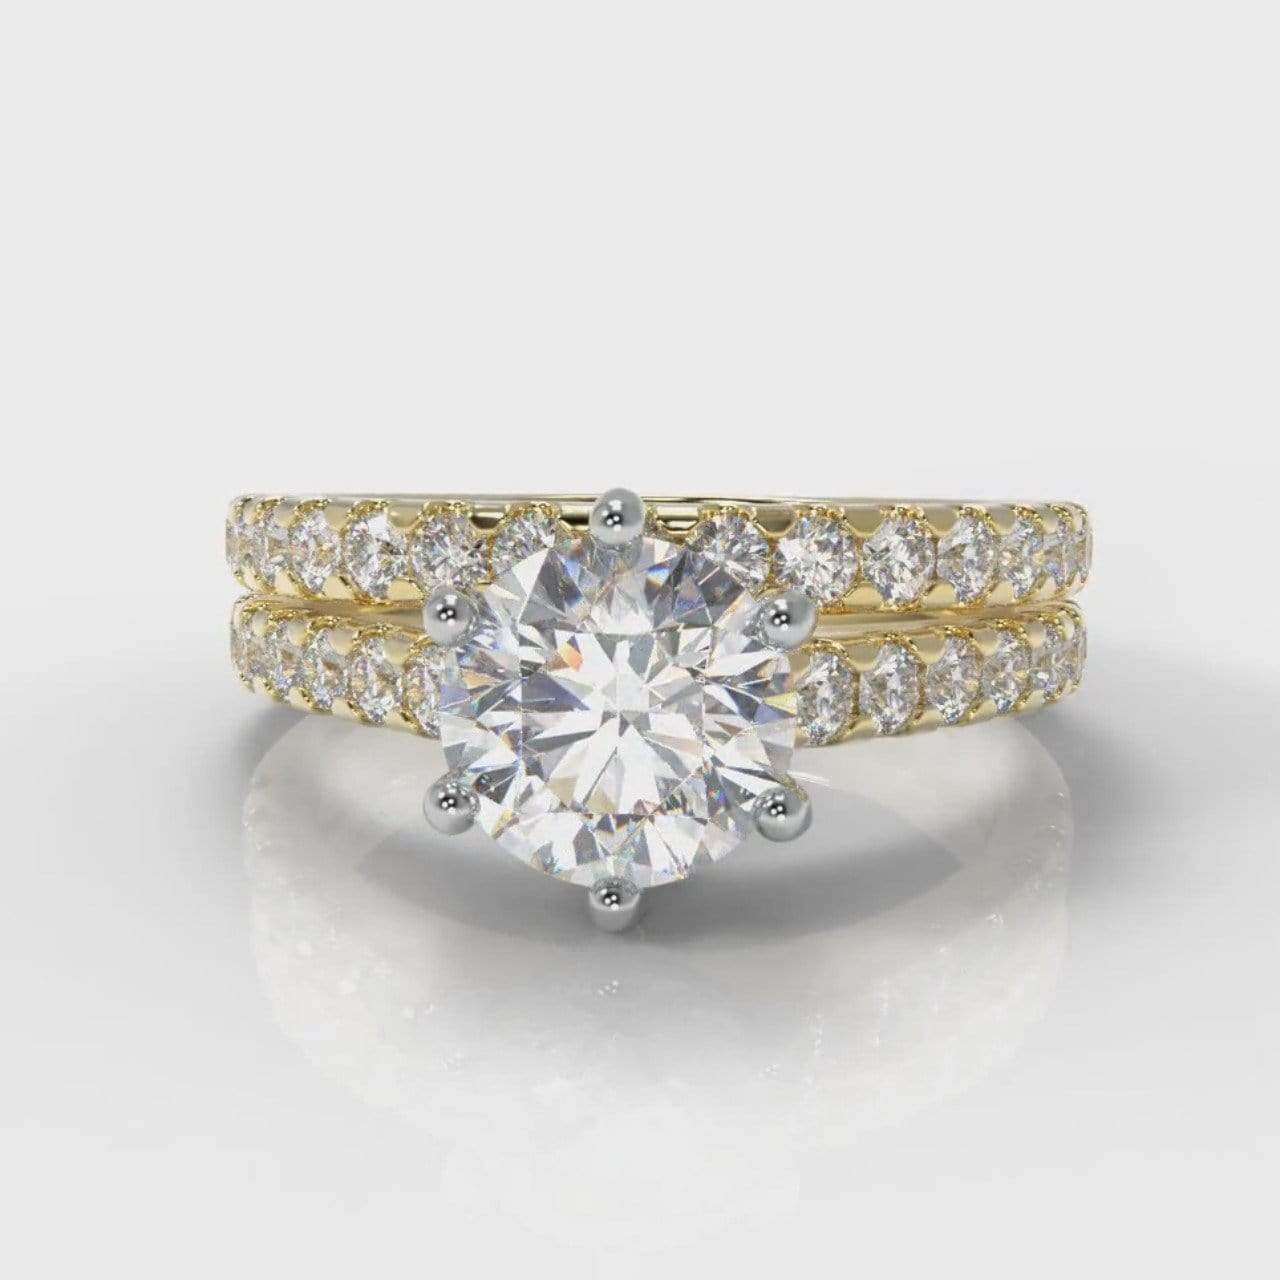 Six Claw Castle Round Brilliant Cut Lab Diamond Bridal Ring Set - Yellow Gold